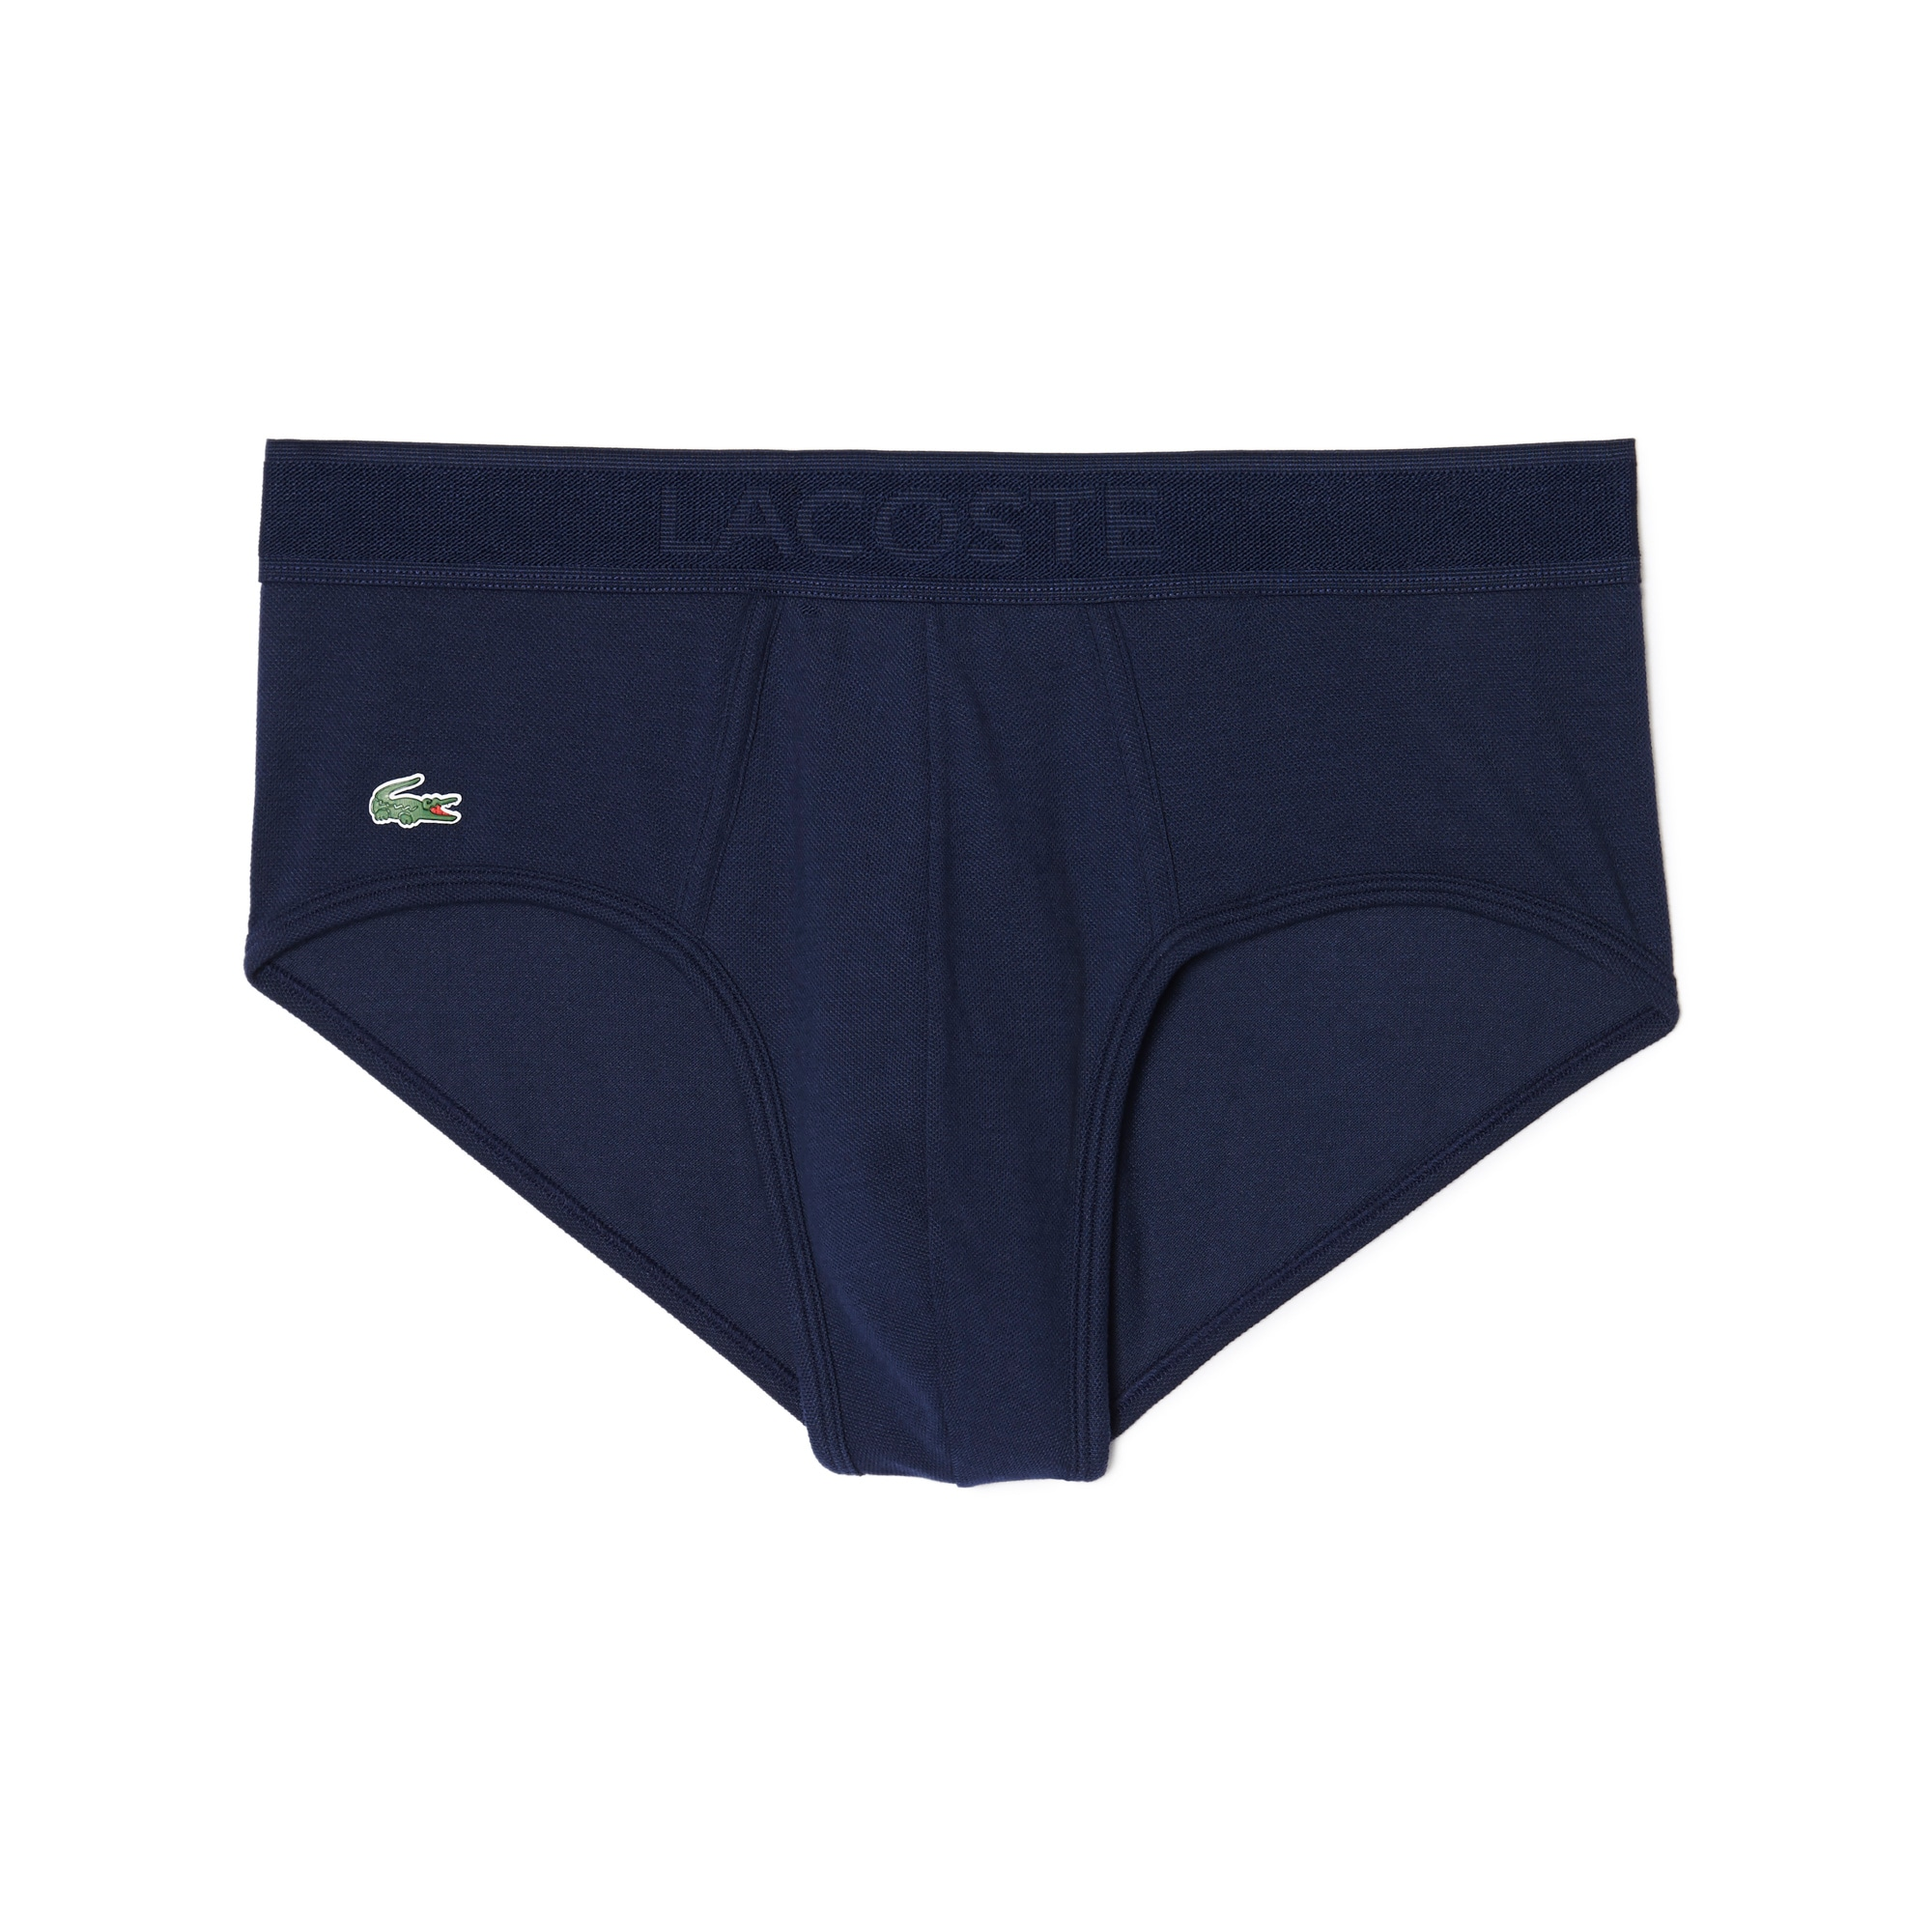 Men's L.12.12 Piqué Brief